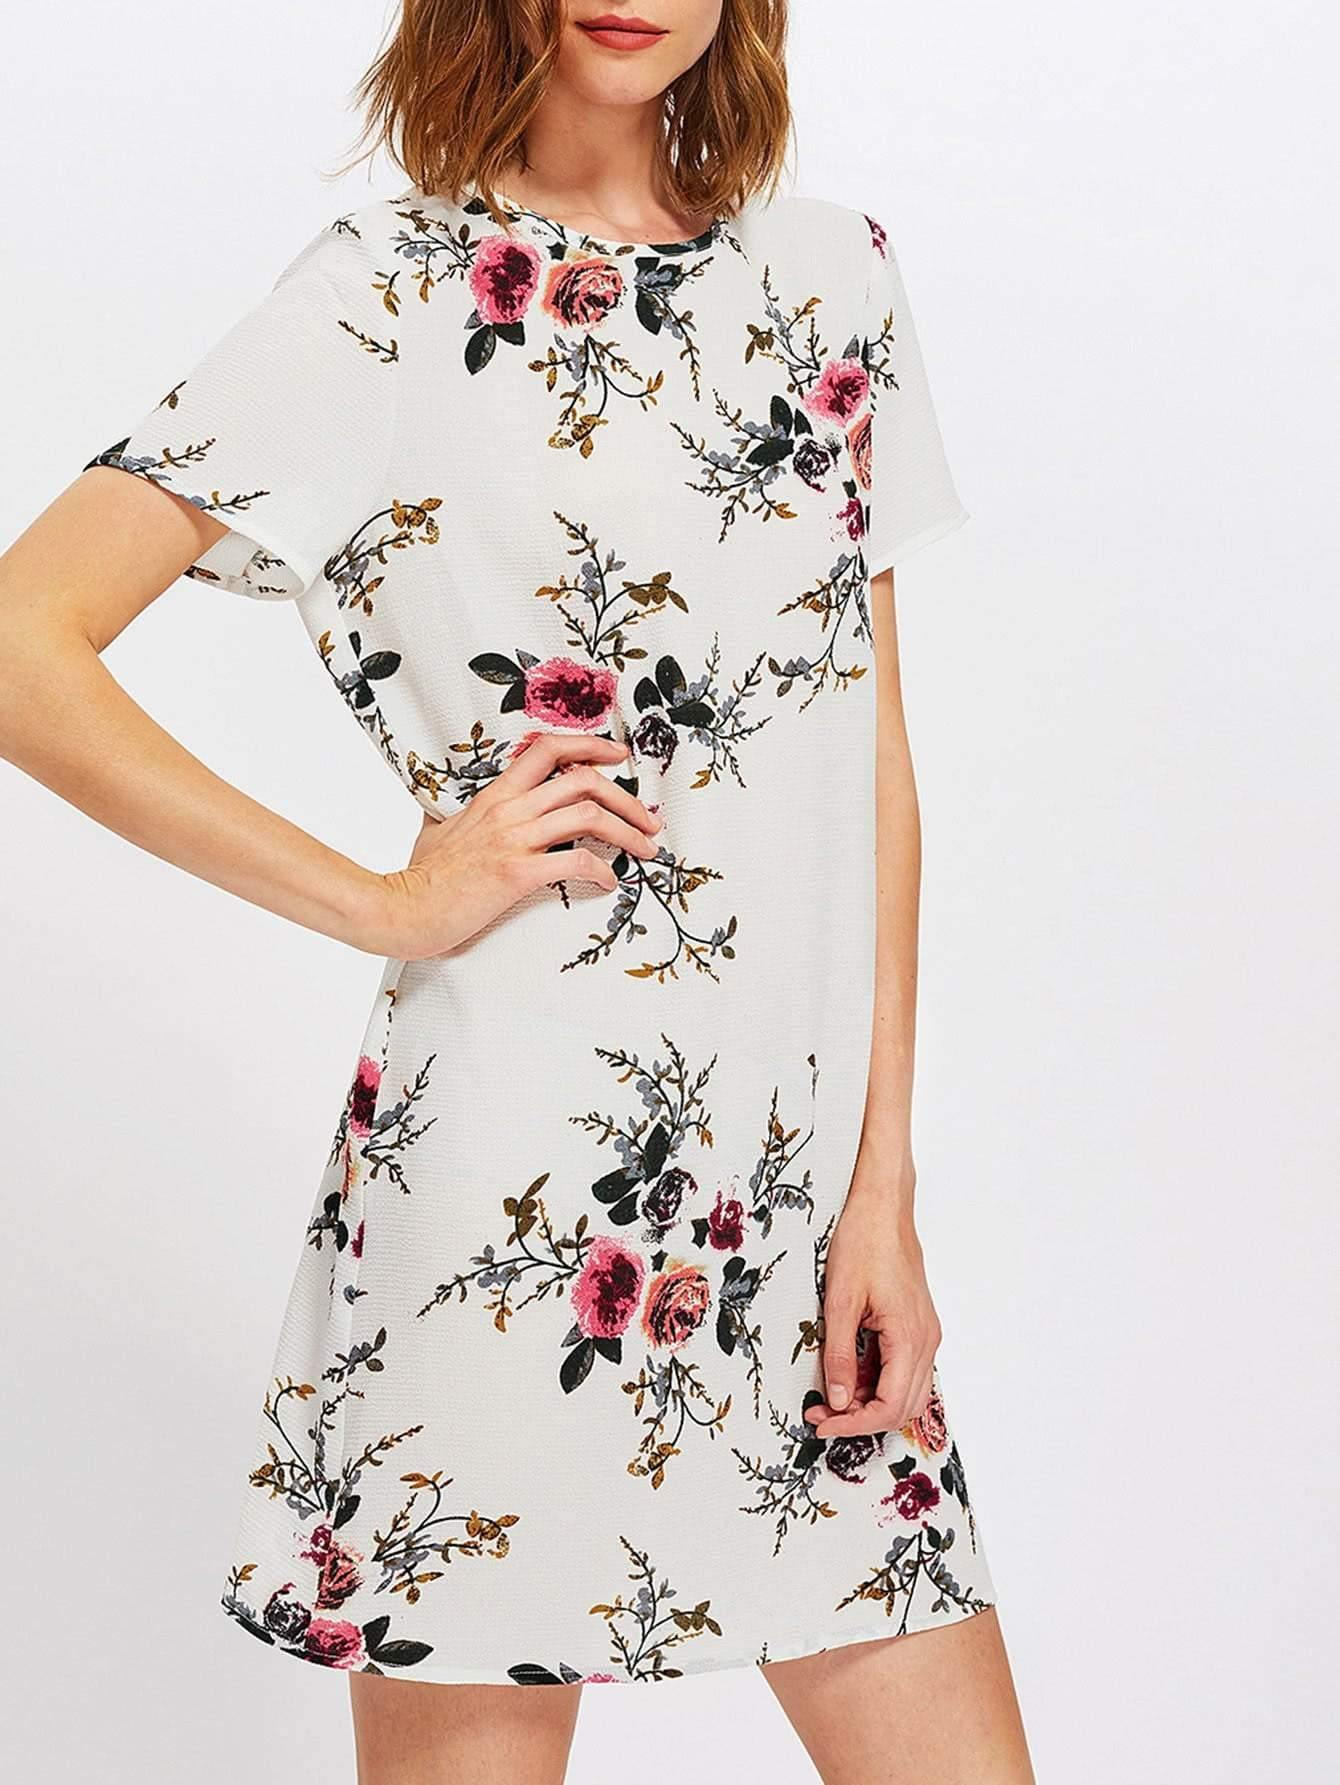 Buttoned Keyhole Back Floral Dress - Dresses - Zooomberg - Zoomberg